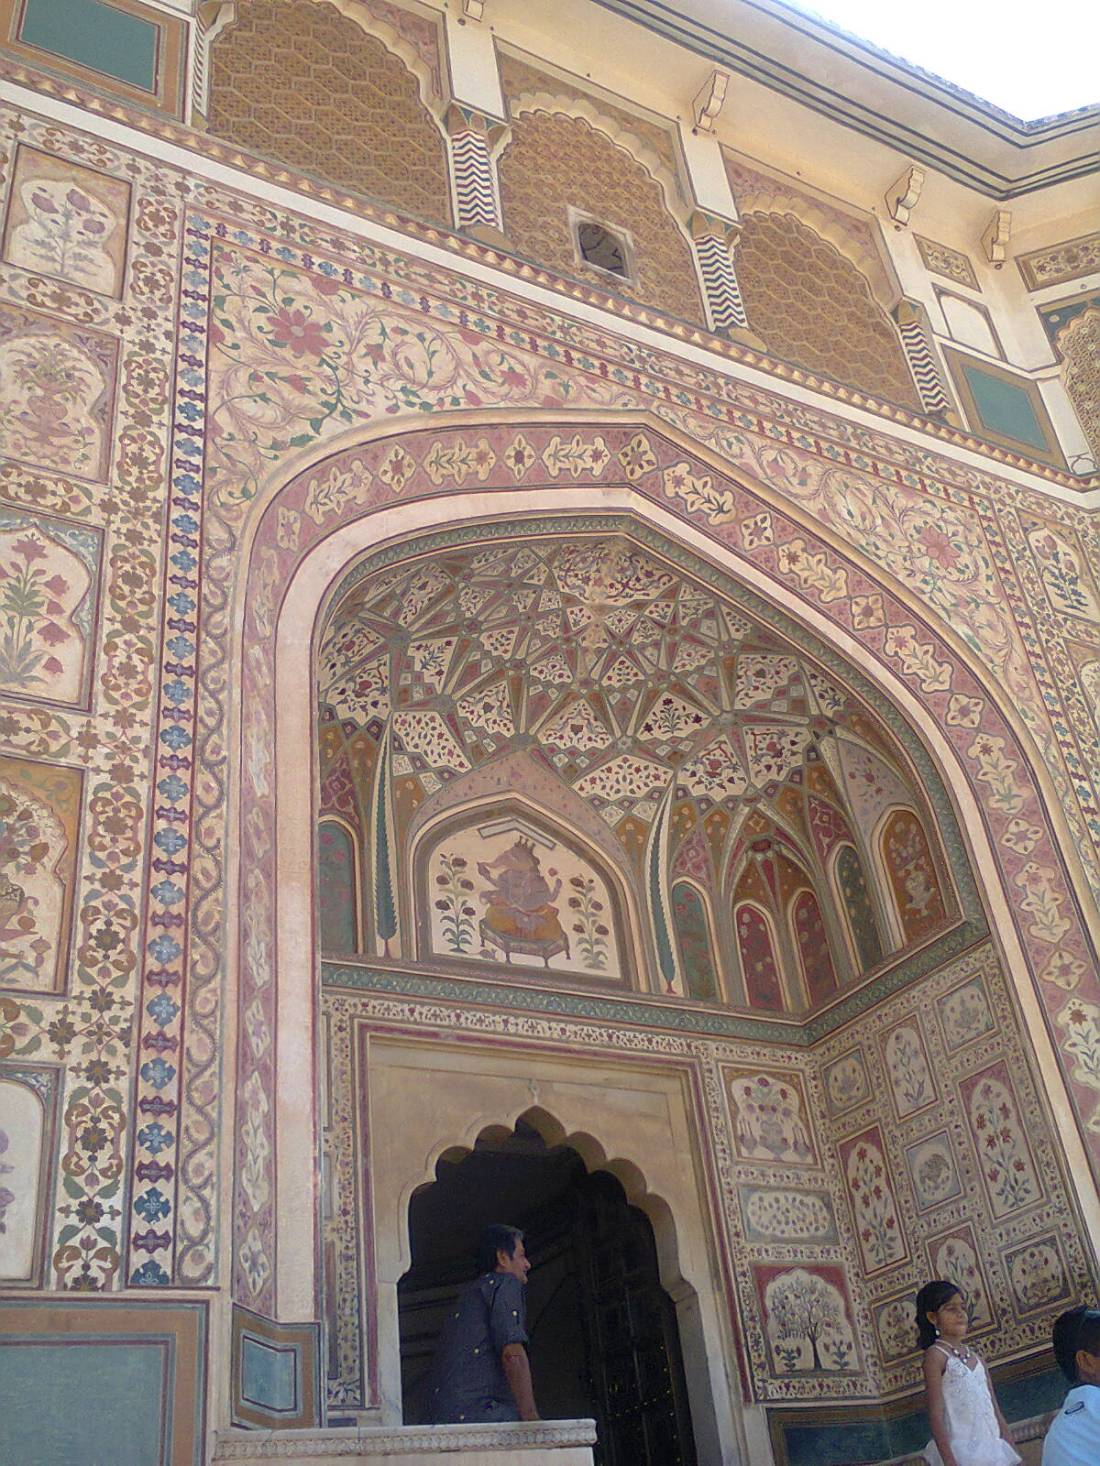 An entrance, Amer fort.